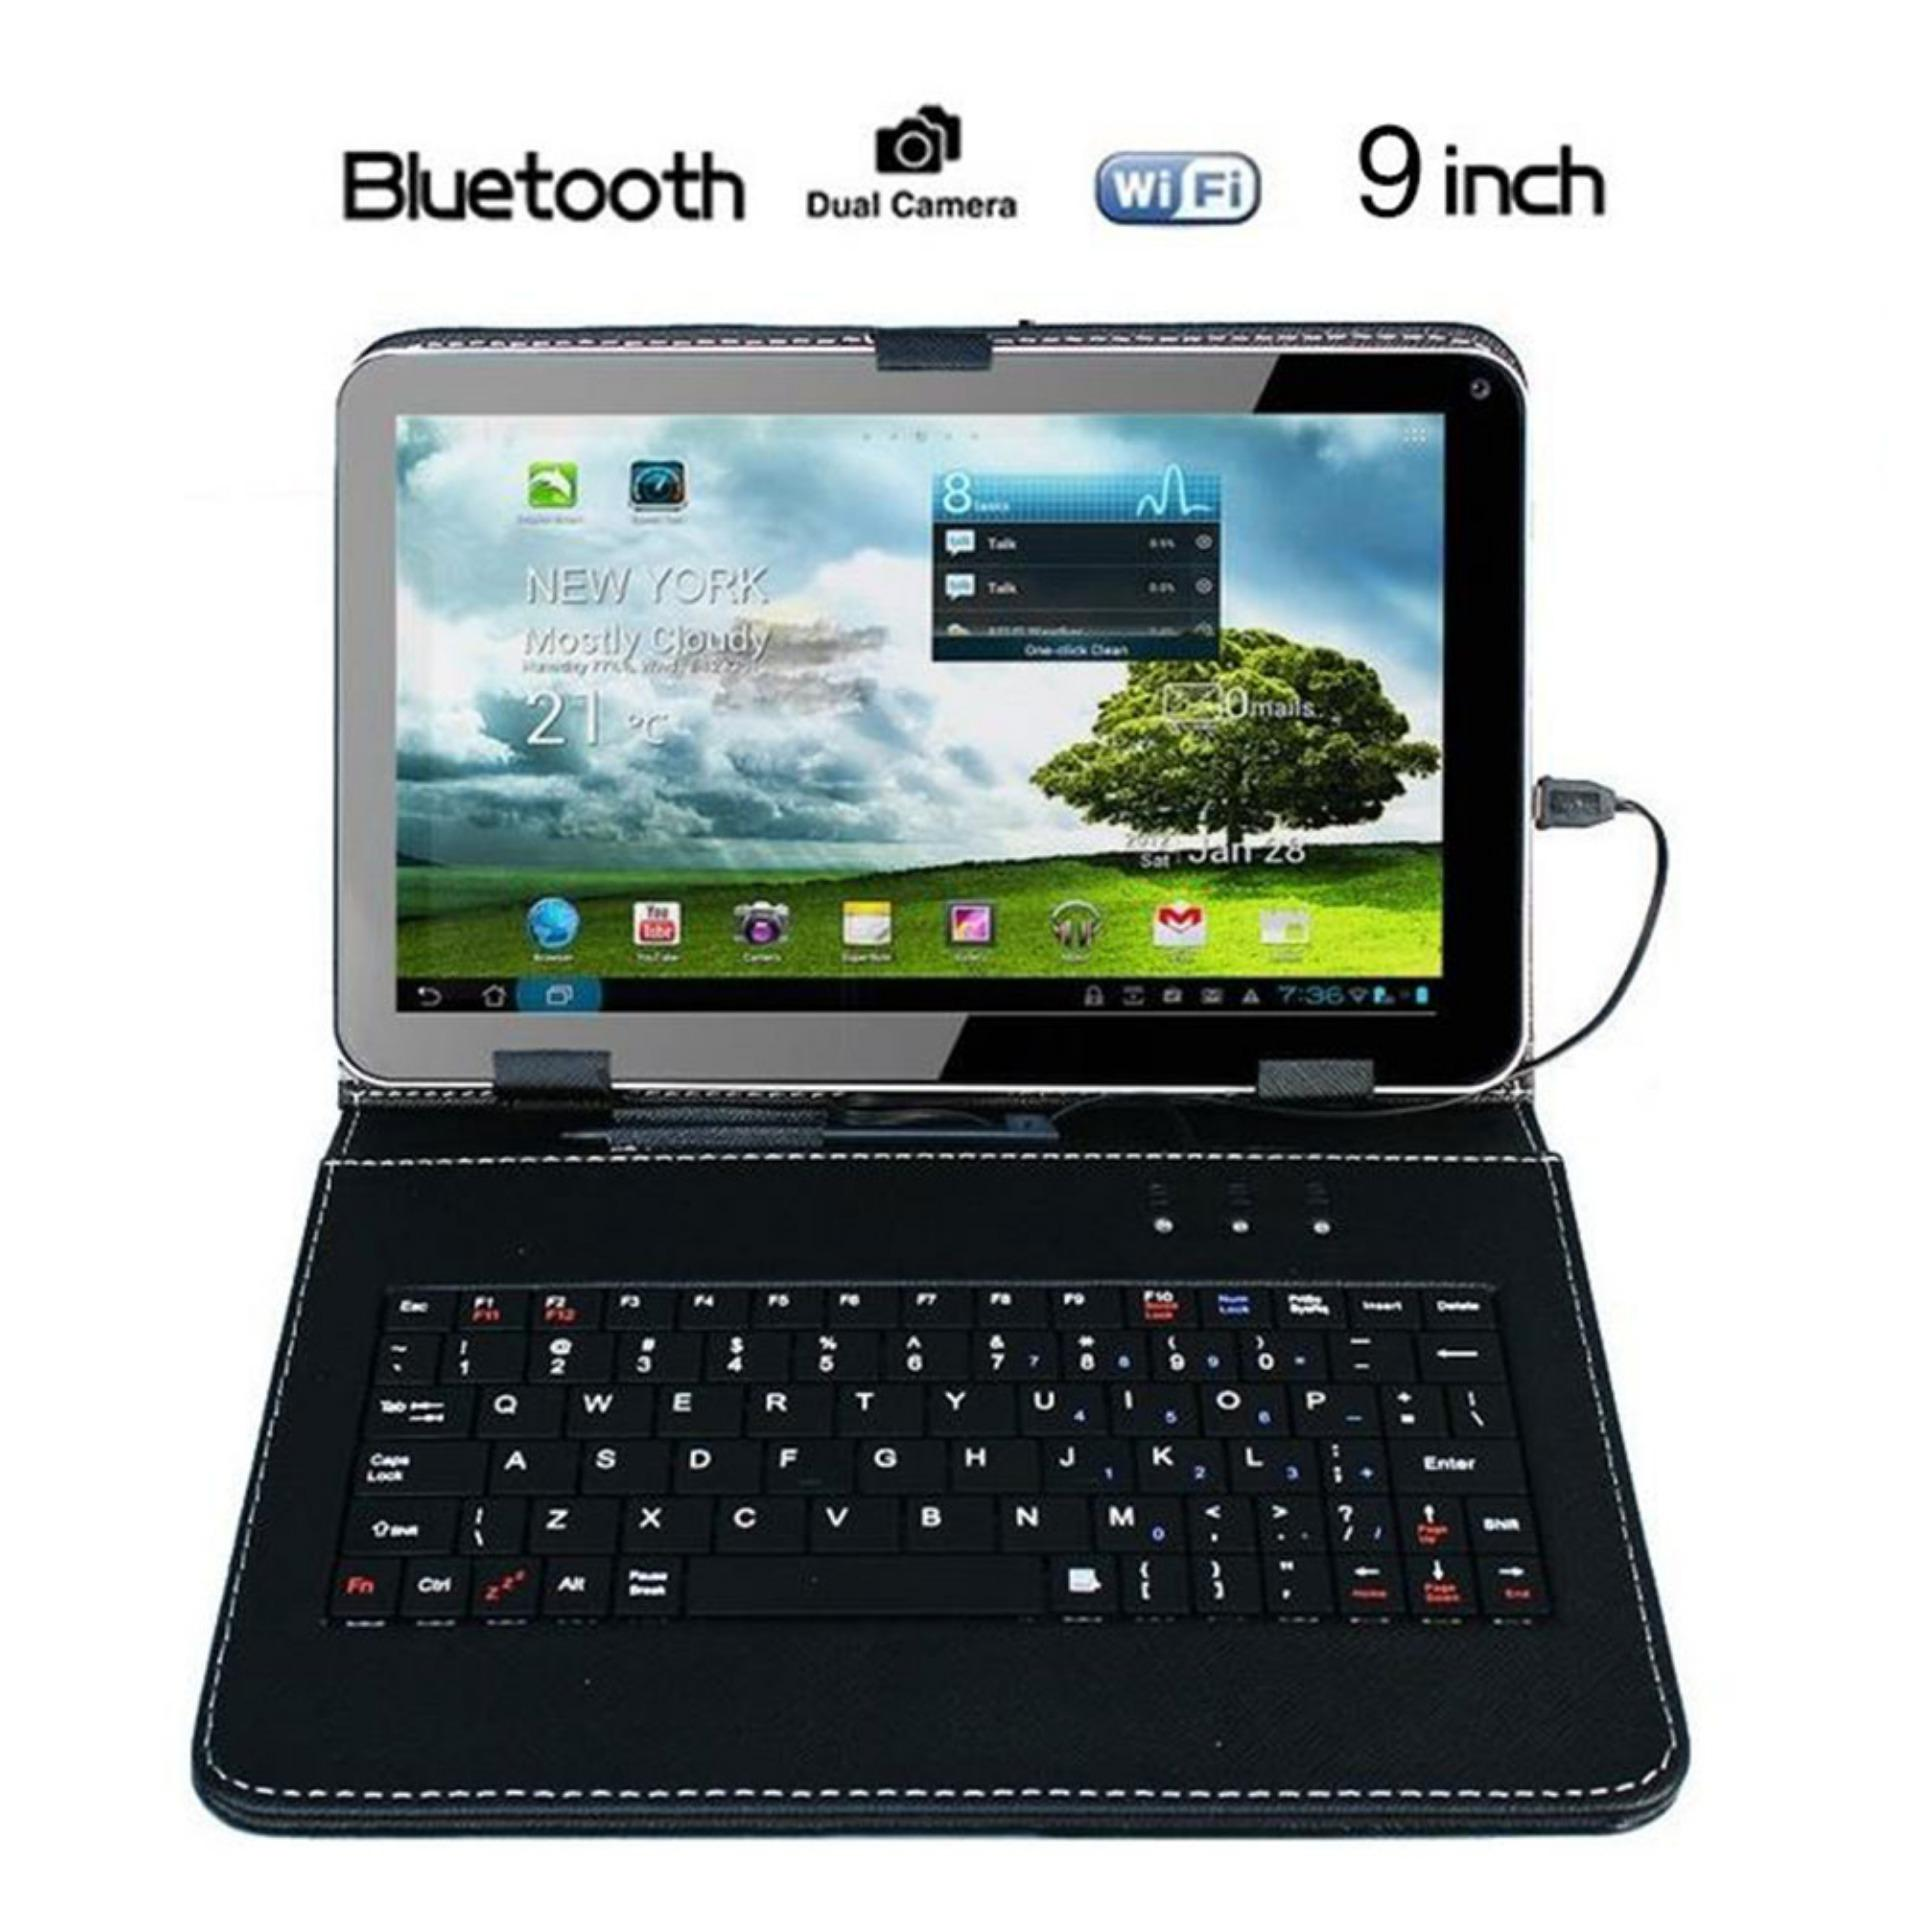 Newworldmall 9 Inch Android Tablet Pc Allwinner A33 Quad Core 8gb +keyboard Au Black By Newworldmall.